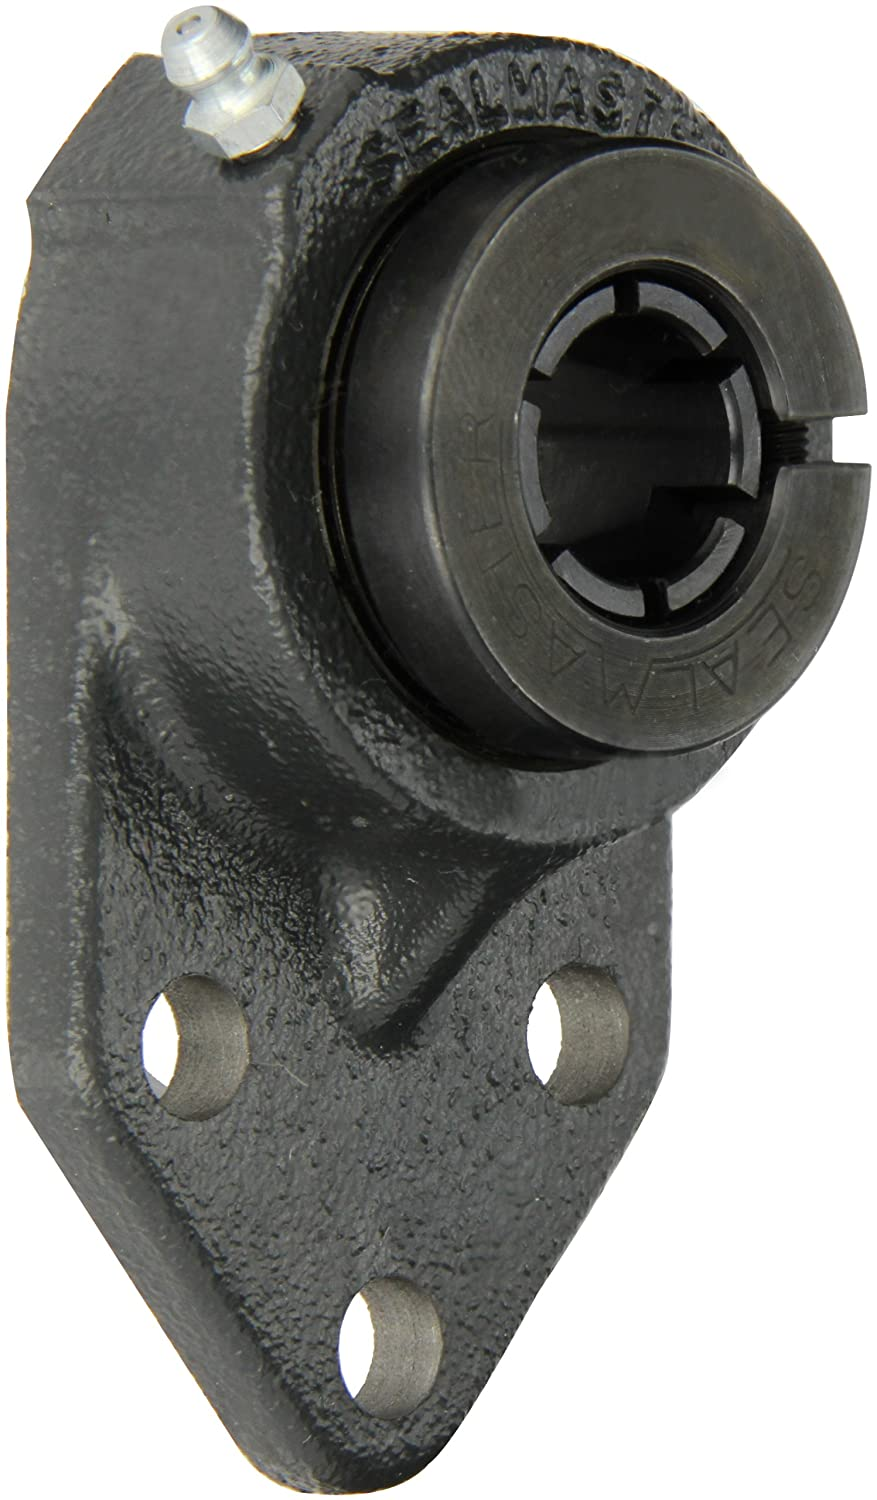 Sealmaster FB-12TC Standard Duty Flange Bracket Regreasable 3 Bolt /±2 Degrees Misalignment Angle 3//4 Bore 4-1//4 Overall Length Regal Cast Iron Housing Contact Seals 3//4 Bore 5//16 Flange Height Skwezloc Collar 4-1//4 Overall Length